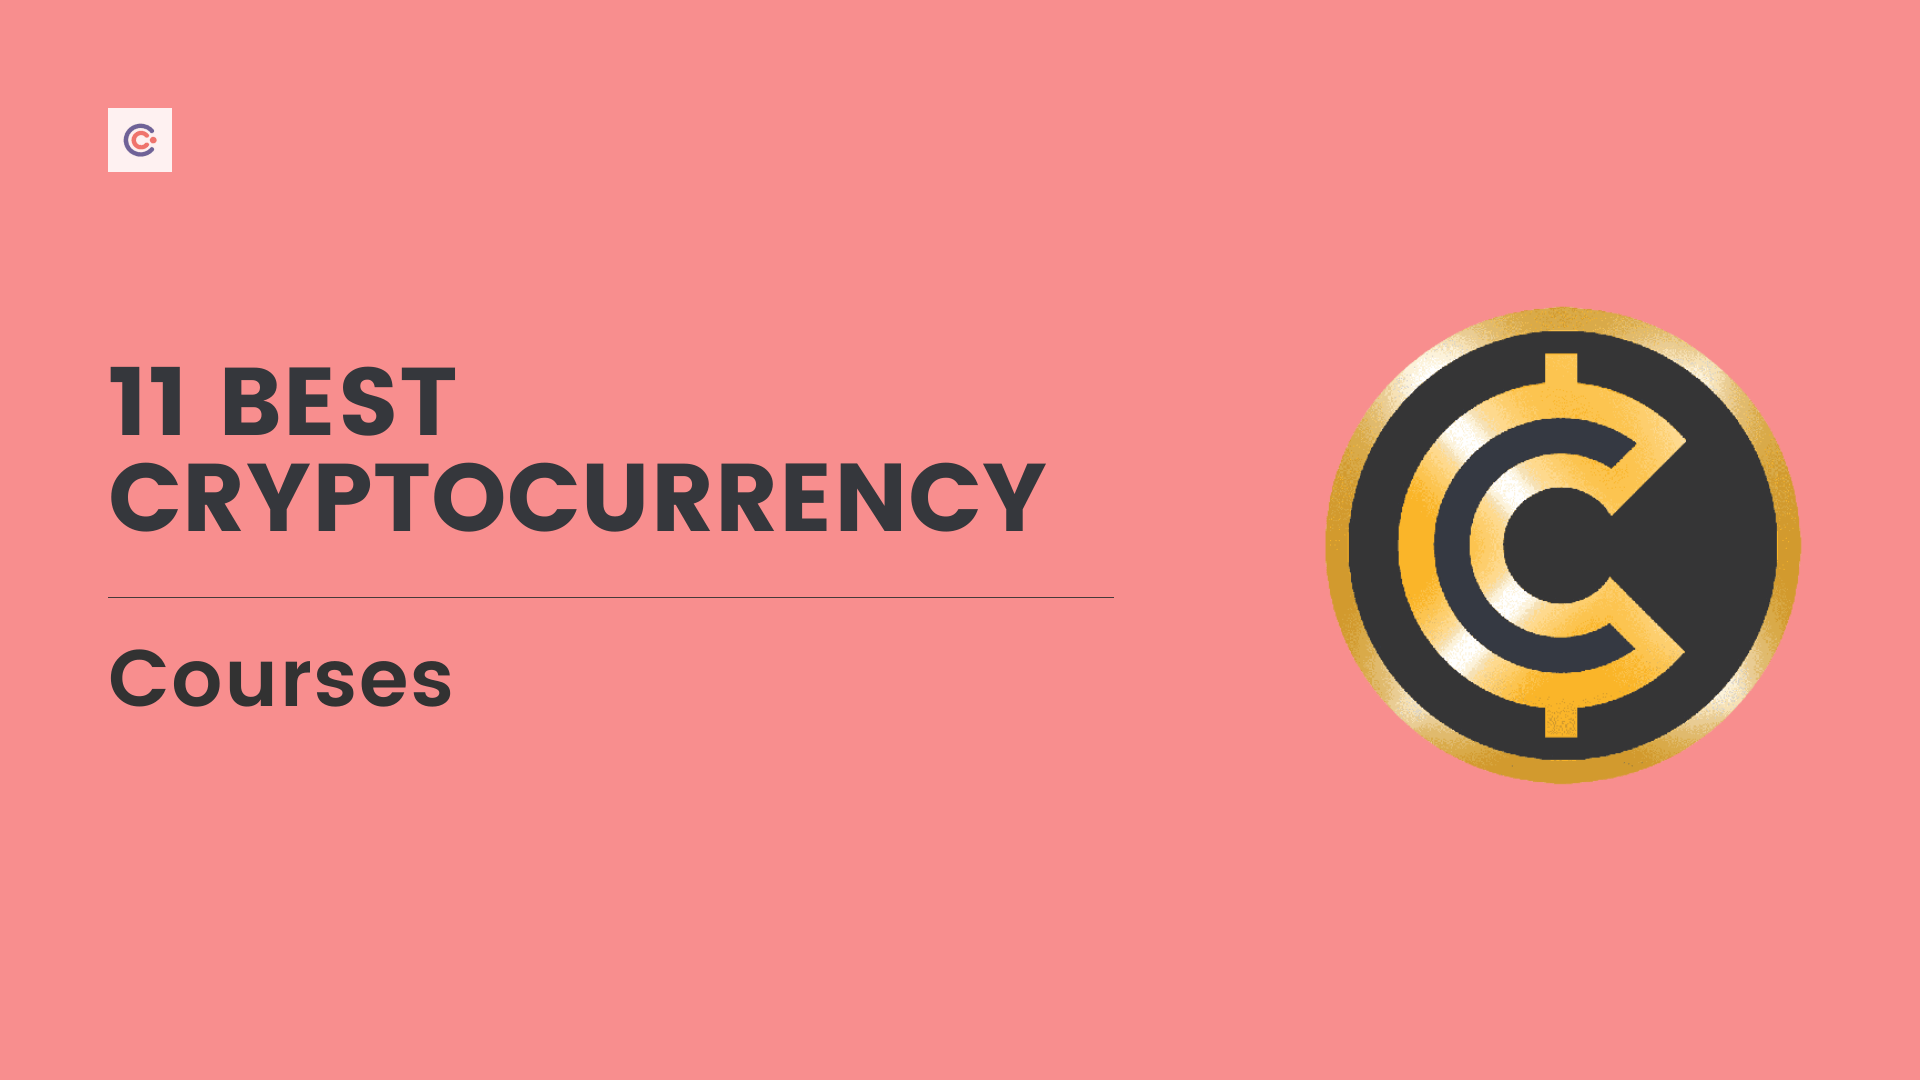 11 Best Cryptocurrency Courses - Learn about Cryptocurrencies Online